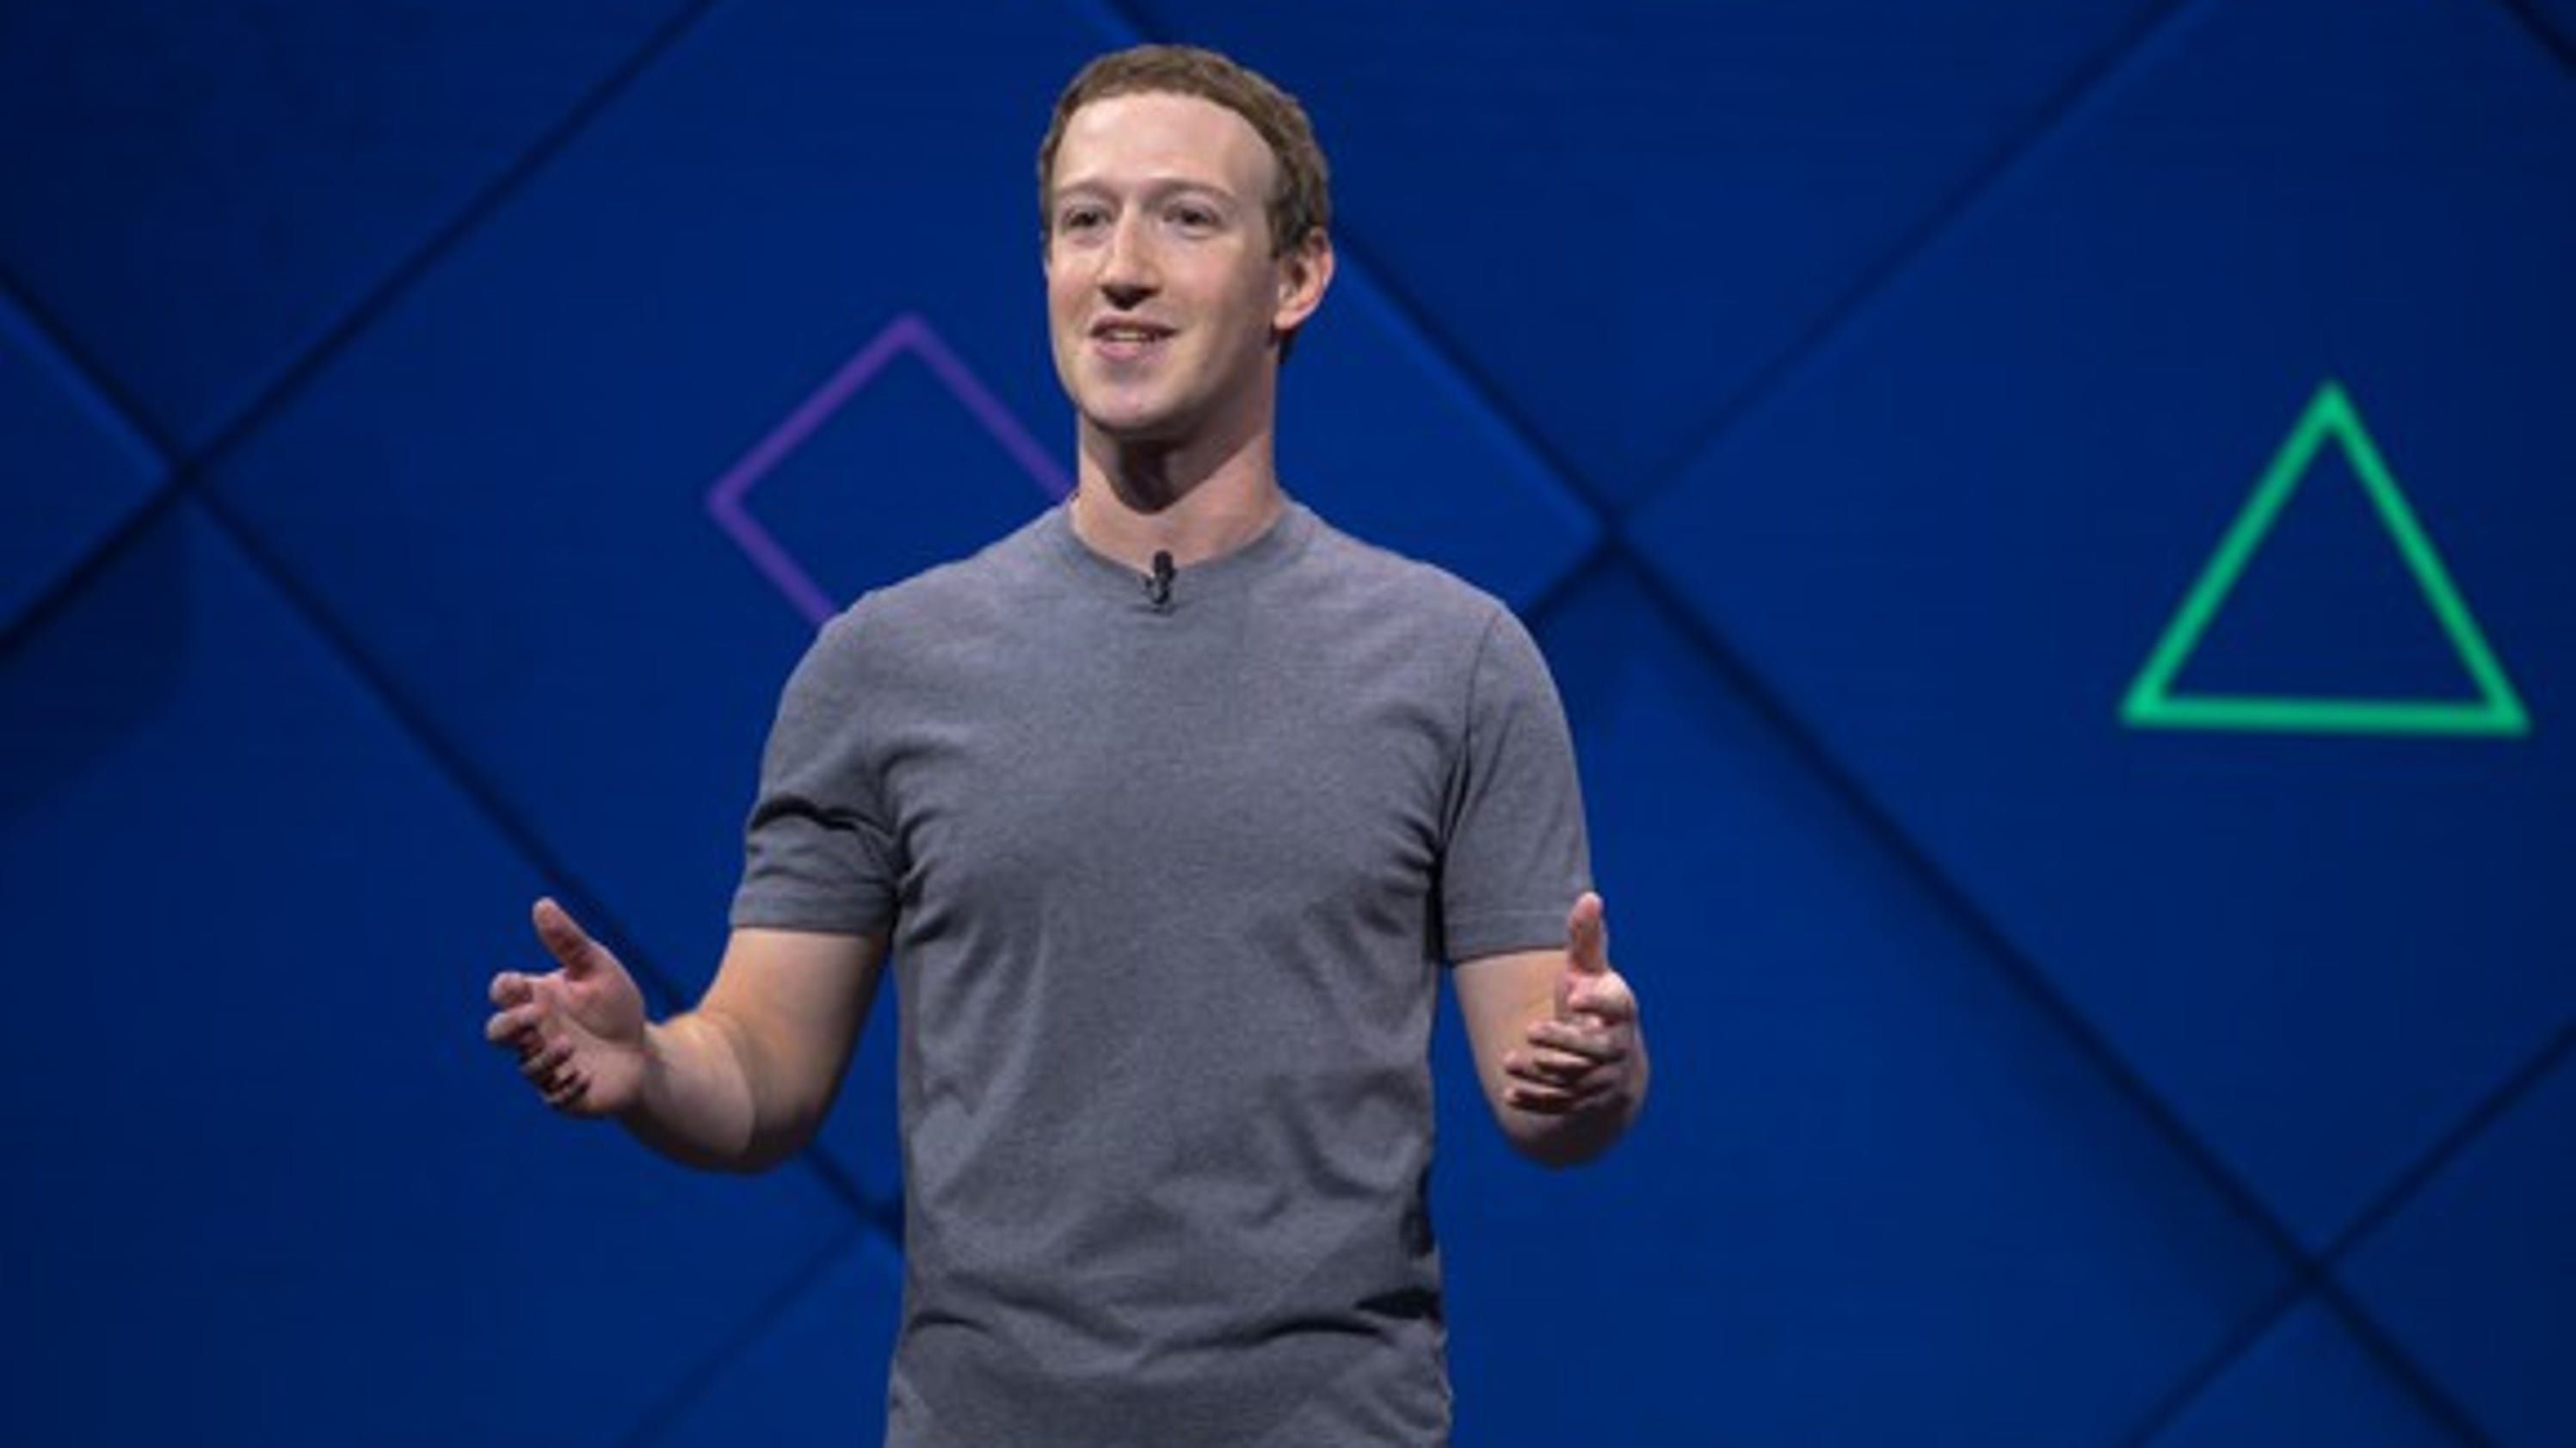 facebook s mark zuckerburg Facebook ceo mark zuckerberg testified before congress today in a  of  questions ranging from whether facebook is a monopoly to whether.